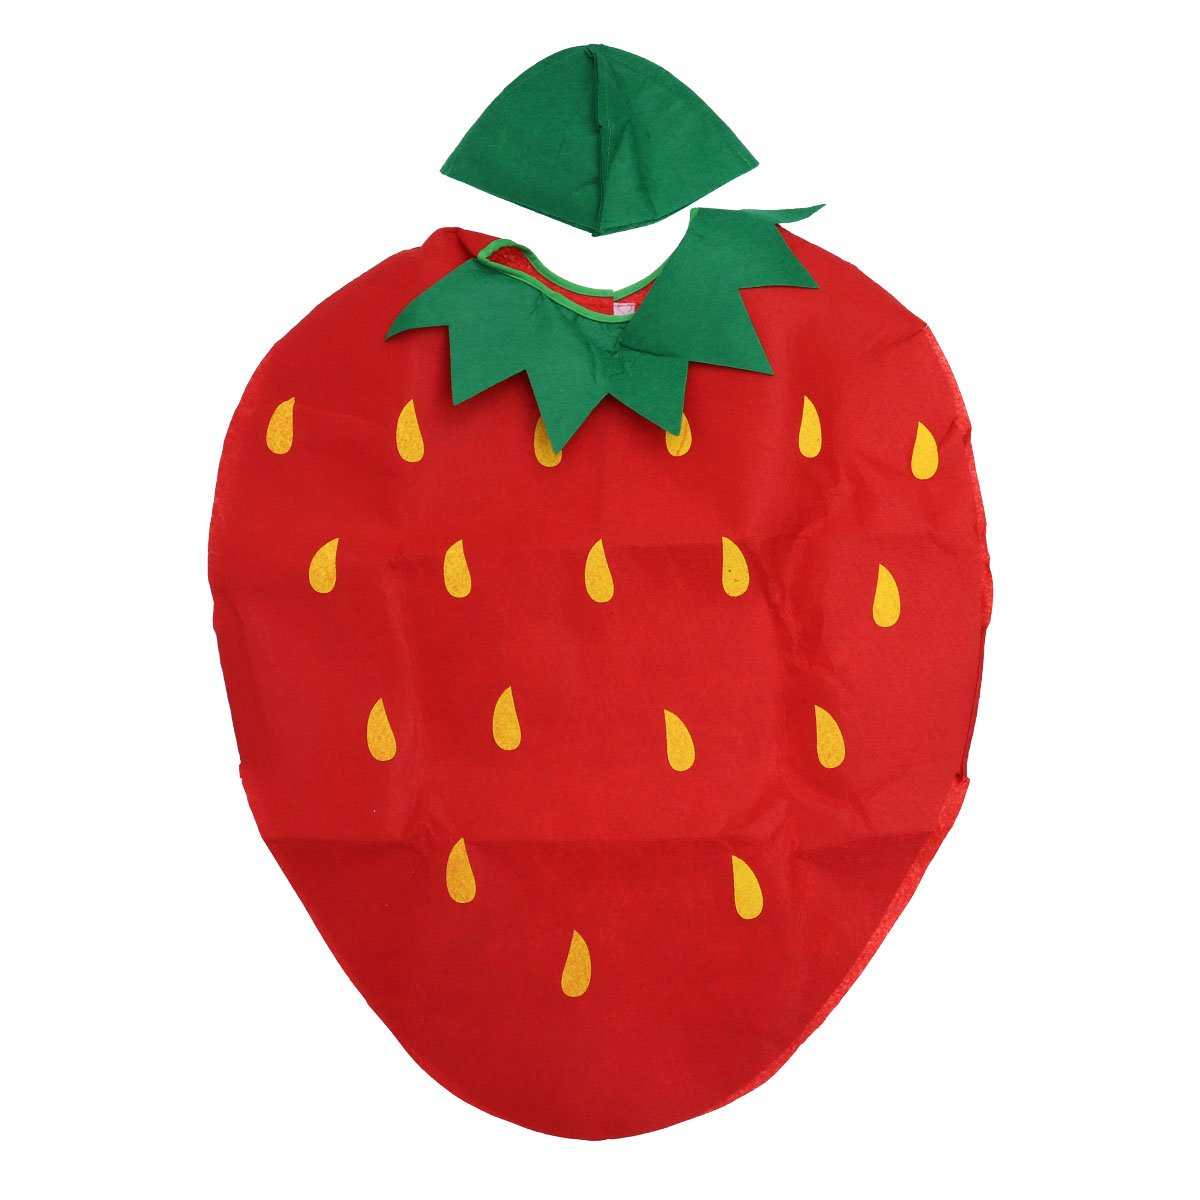 BESTOYARD Traje de verduras de frutas para niños Kids Strawberry Party Clothing Disfraces para Halloween Cosplay Christmas Holidy